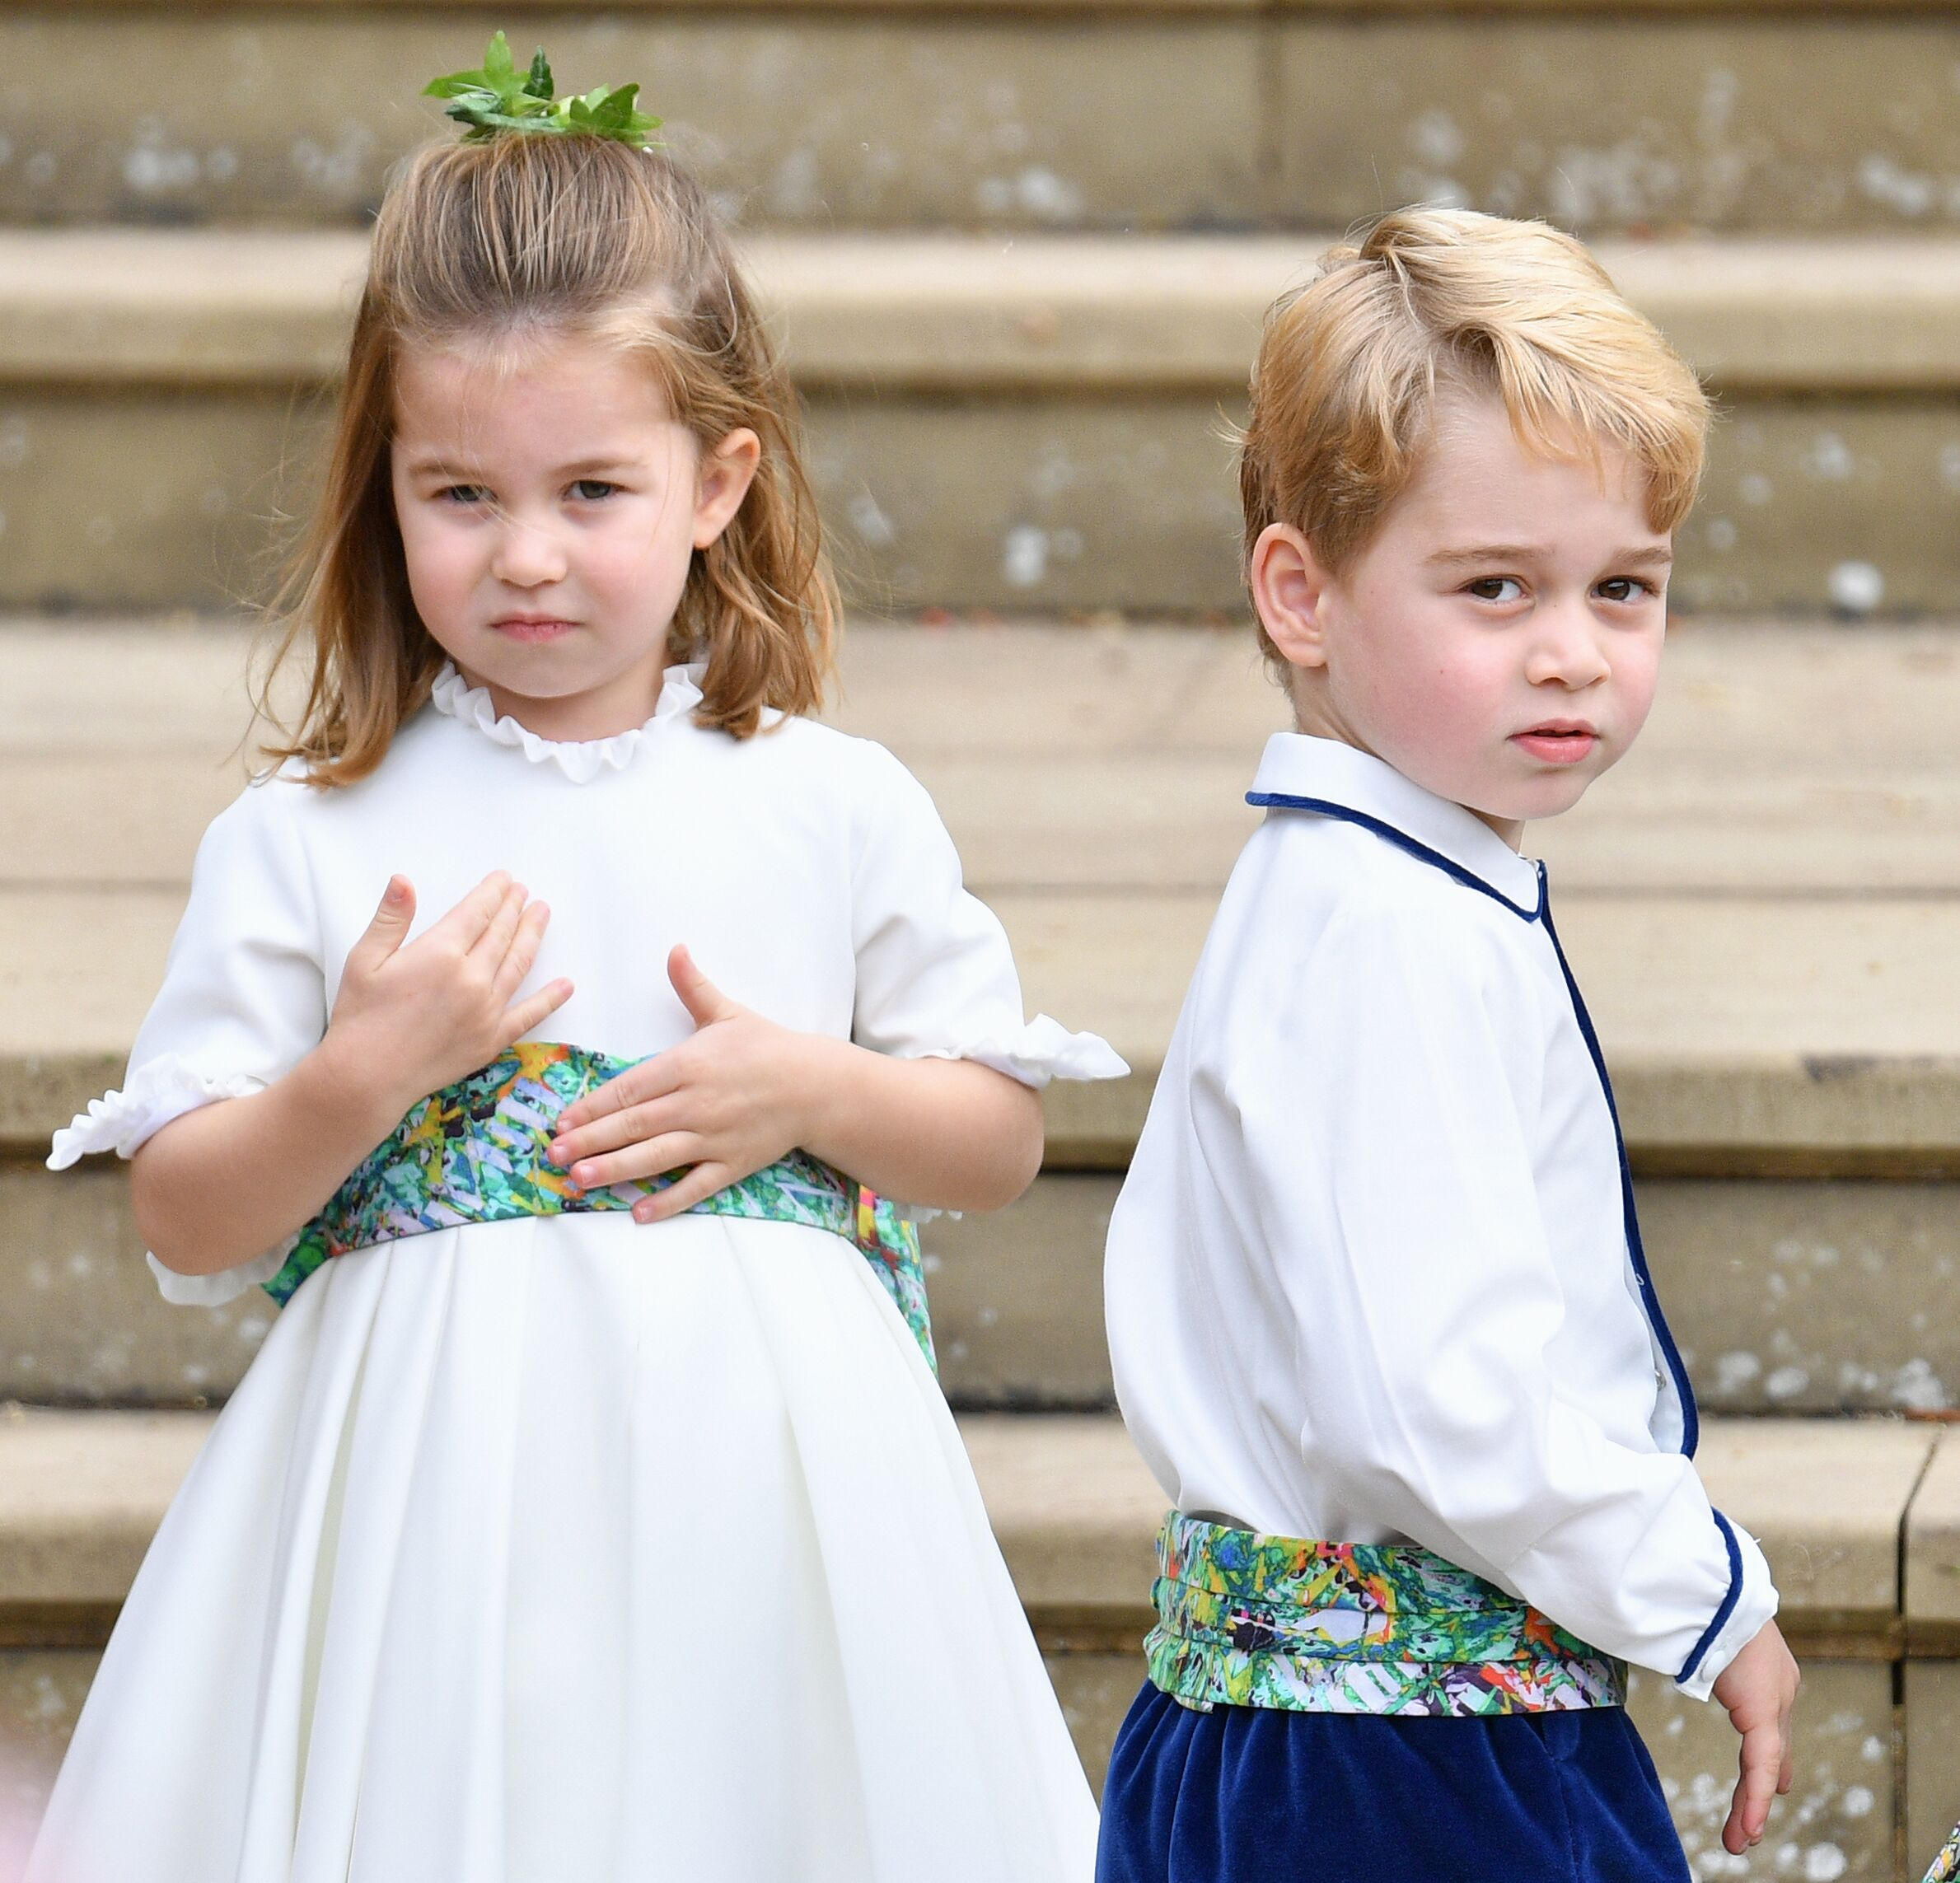 Princess Charlotte of Cambridge and Prince George of Cambridge attend the wedding of Princess Eugenie of York and Jack Brooksbank at St George's Chapel on October 12, 2018 in Windsor, England | Photo: Getty Images